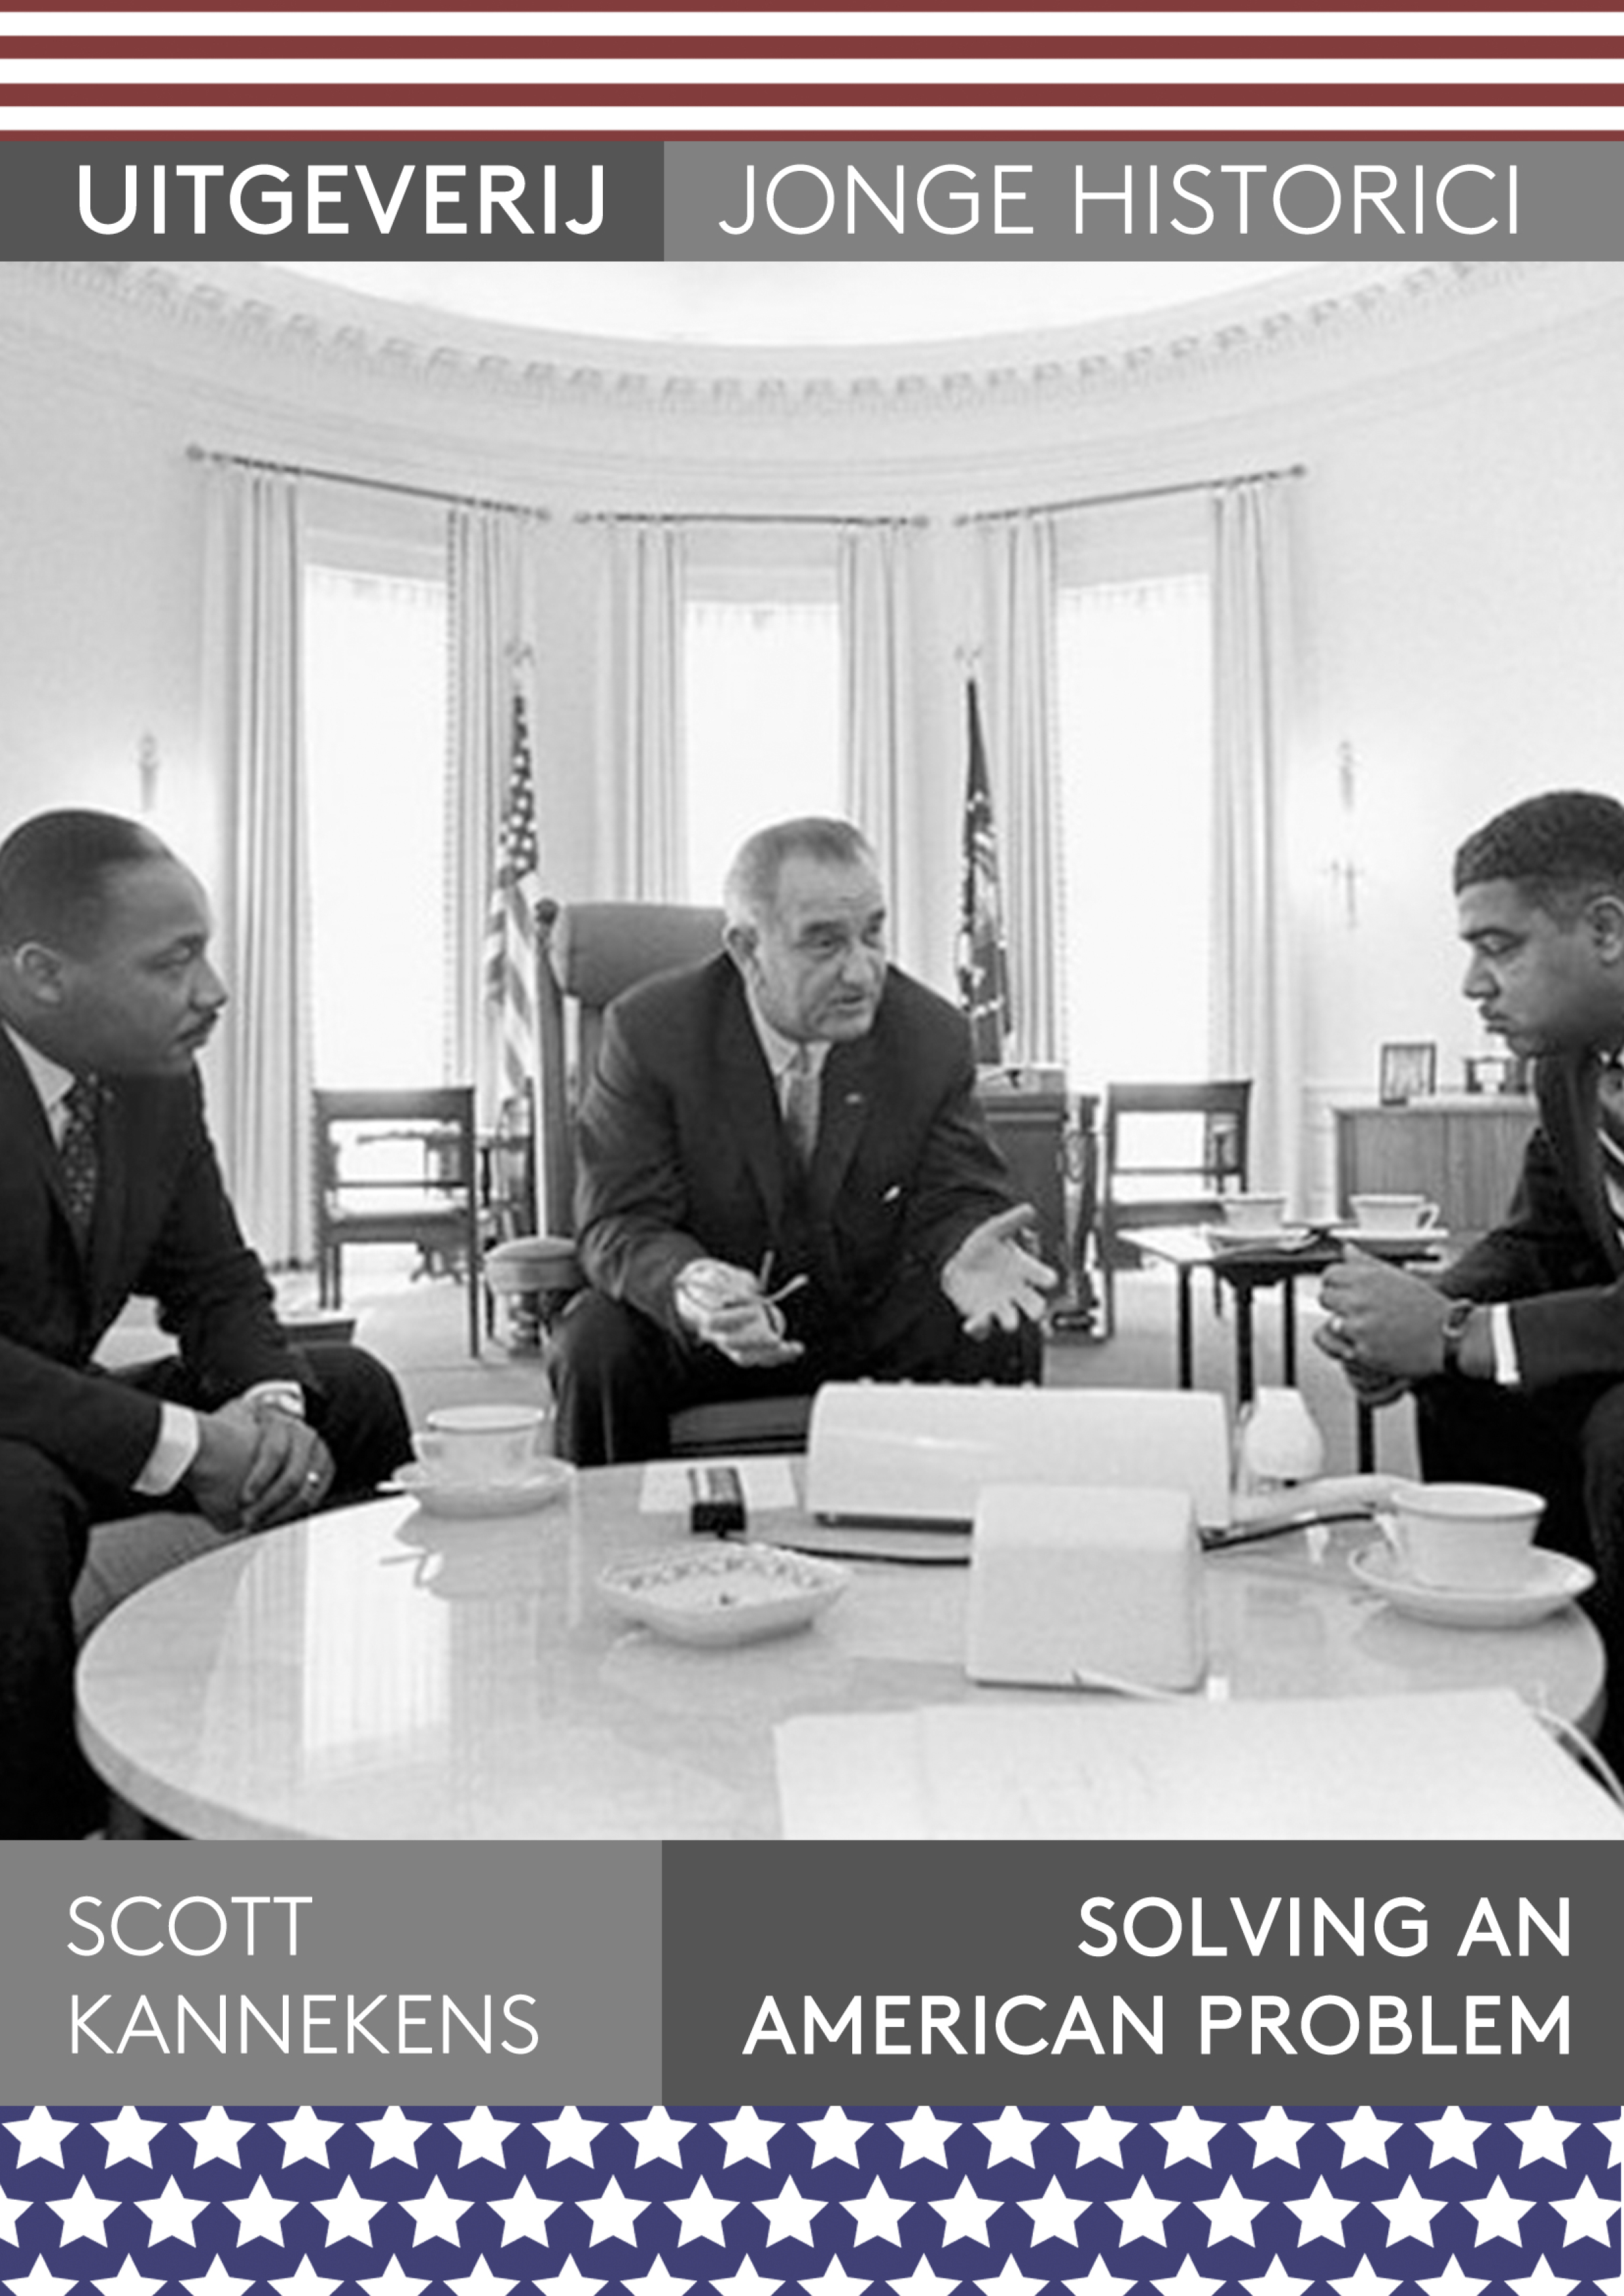 Scott Kannekens, Solving an American Problem. Why Lyndon Johnson Supported Civil Rights Legislation.